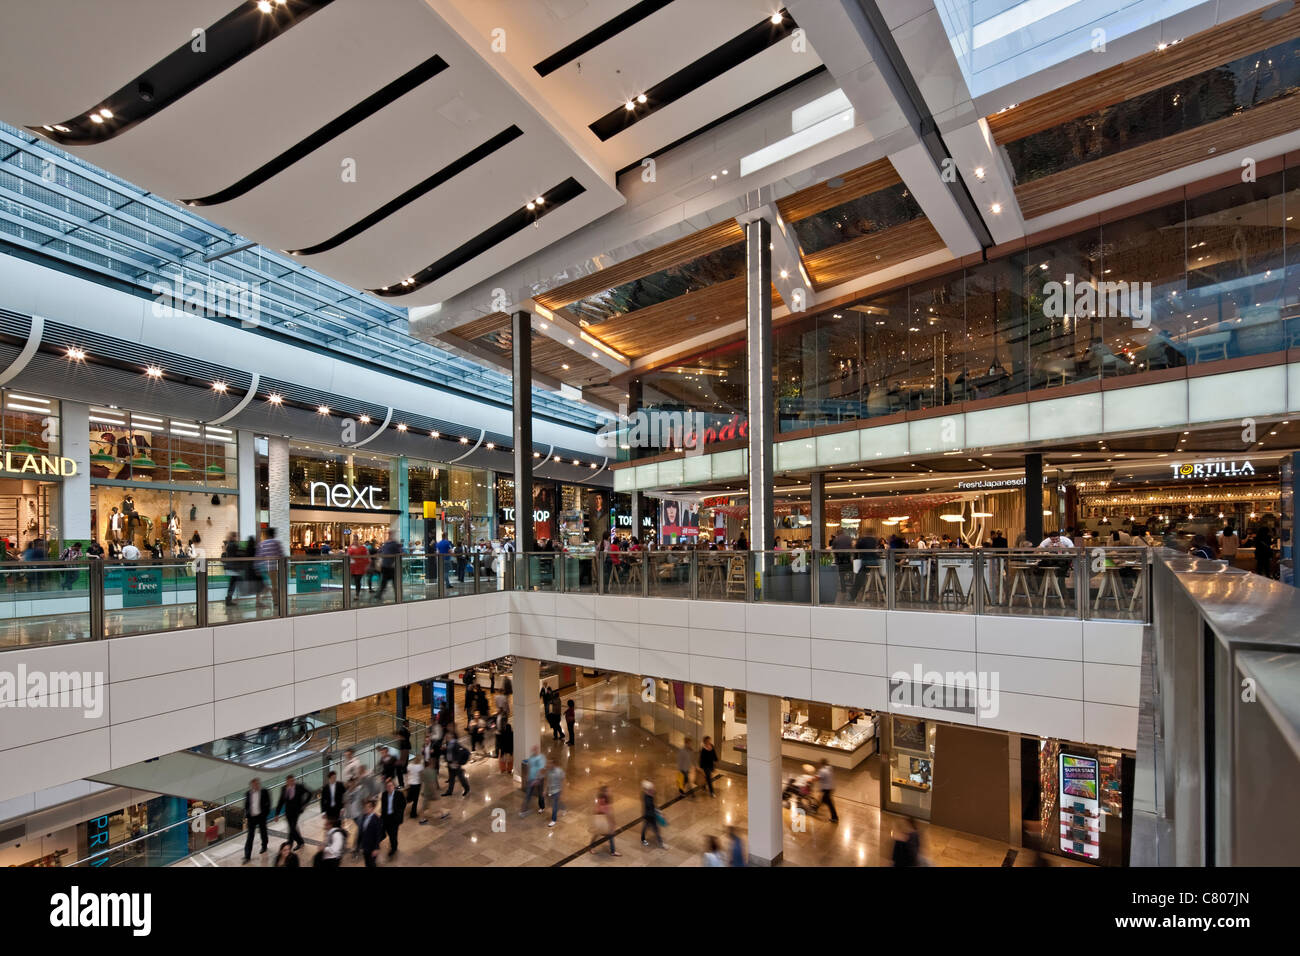 Westfield Shopping Centre - Stratford. - Stock Image